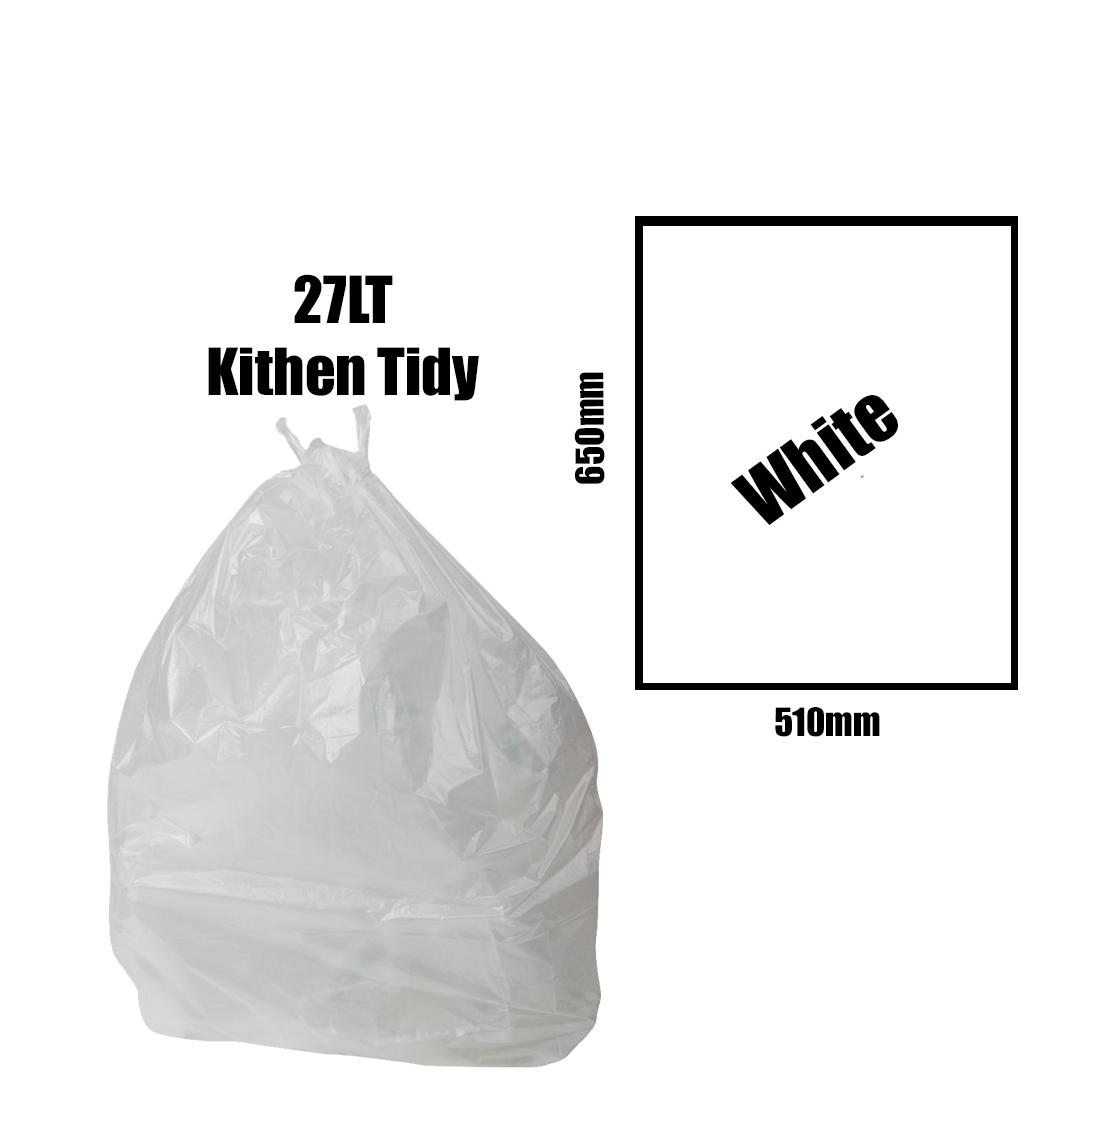 Kitchen Tidy Liners 27lt White Carton 1000pk